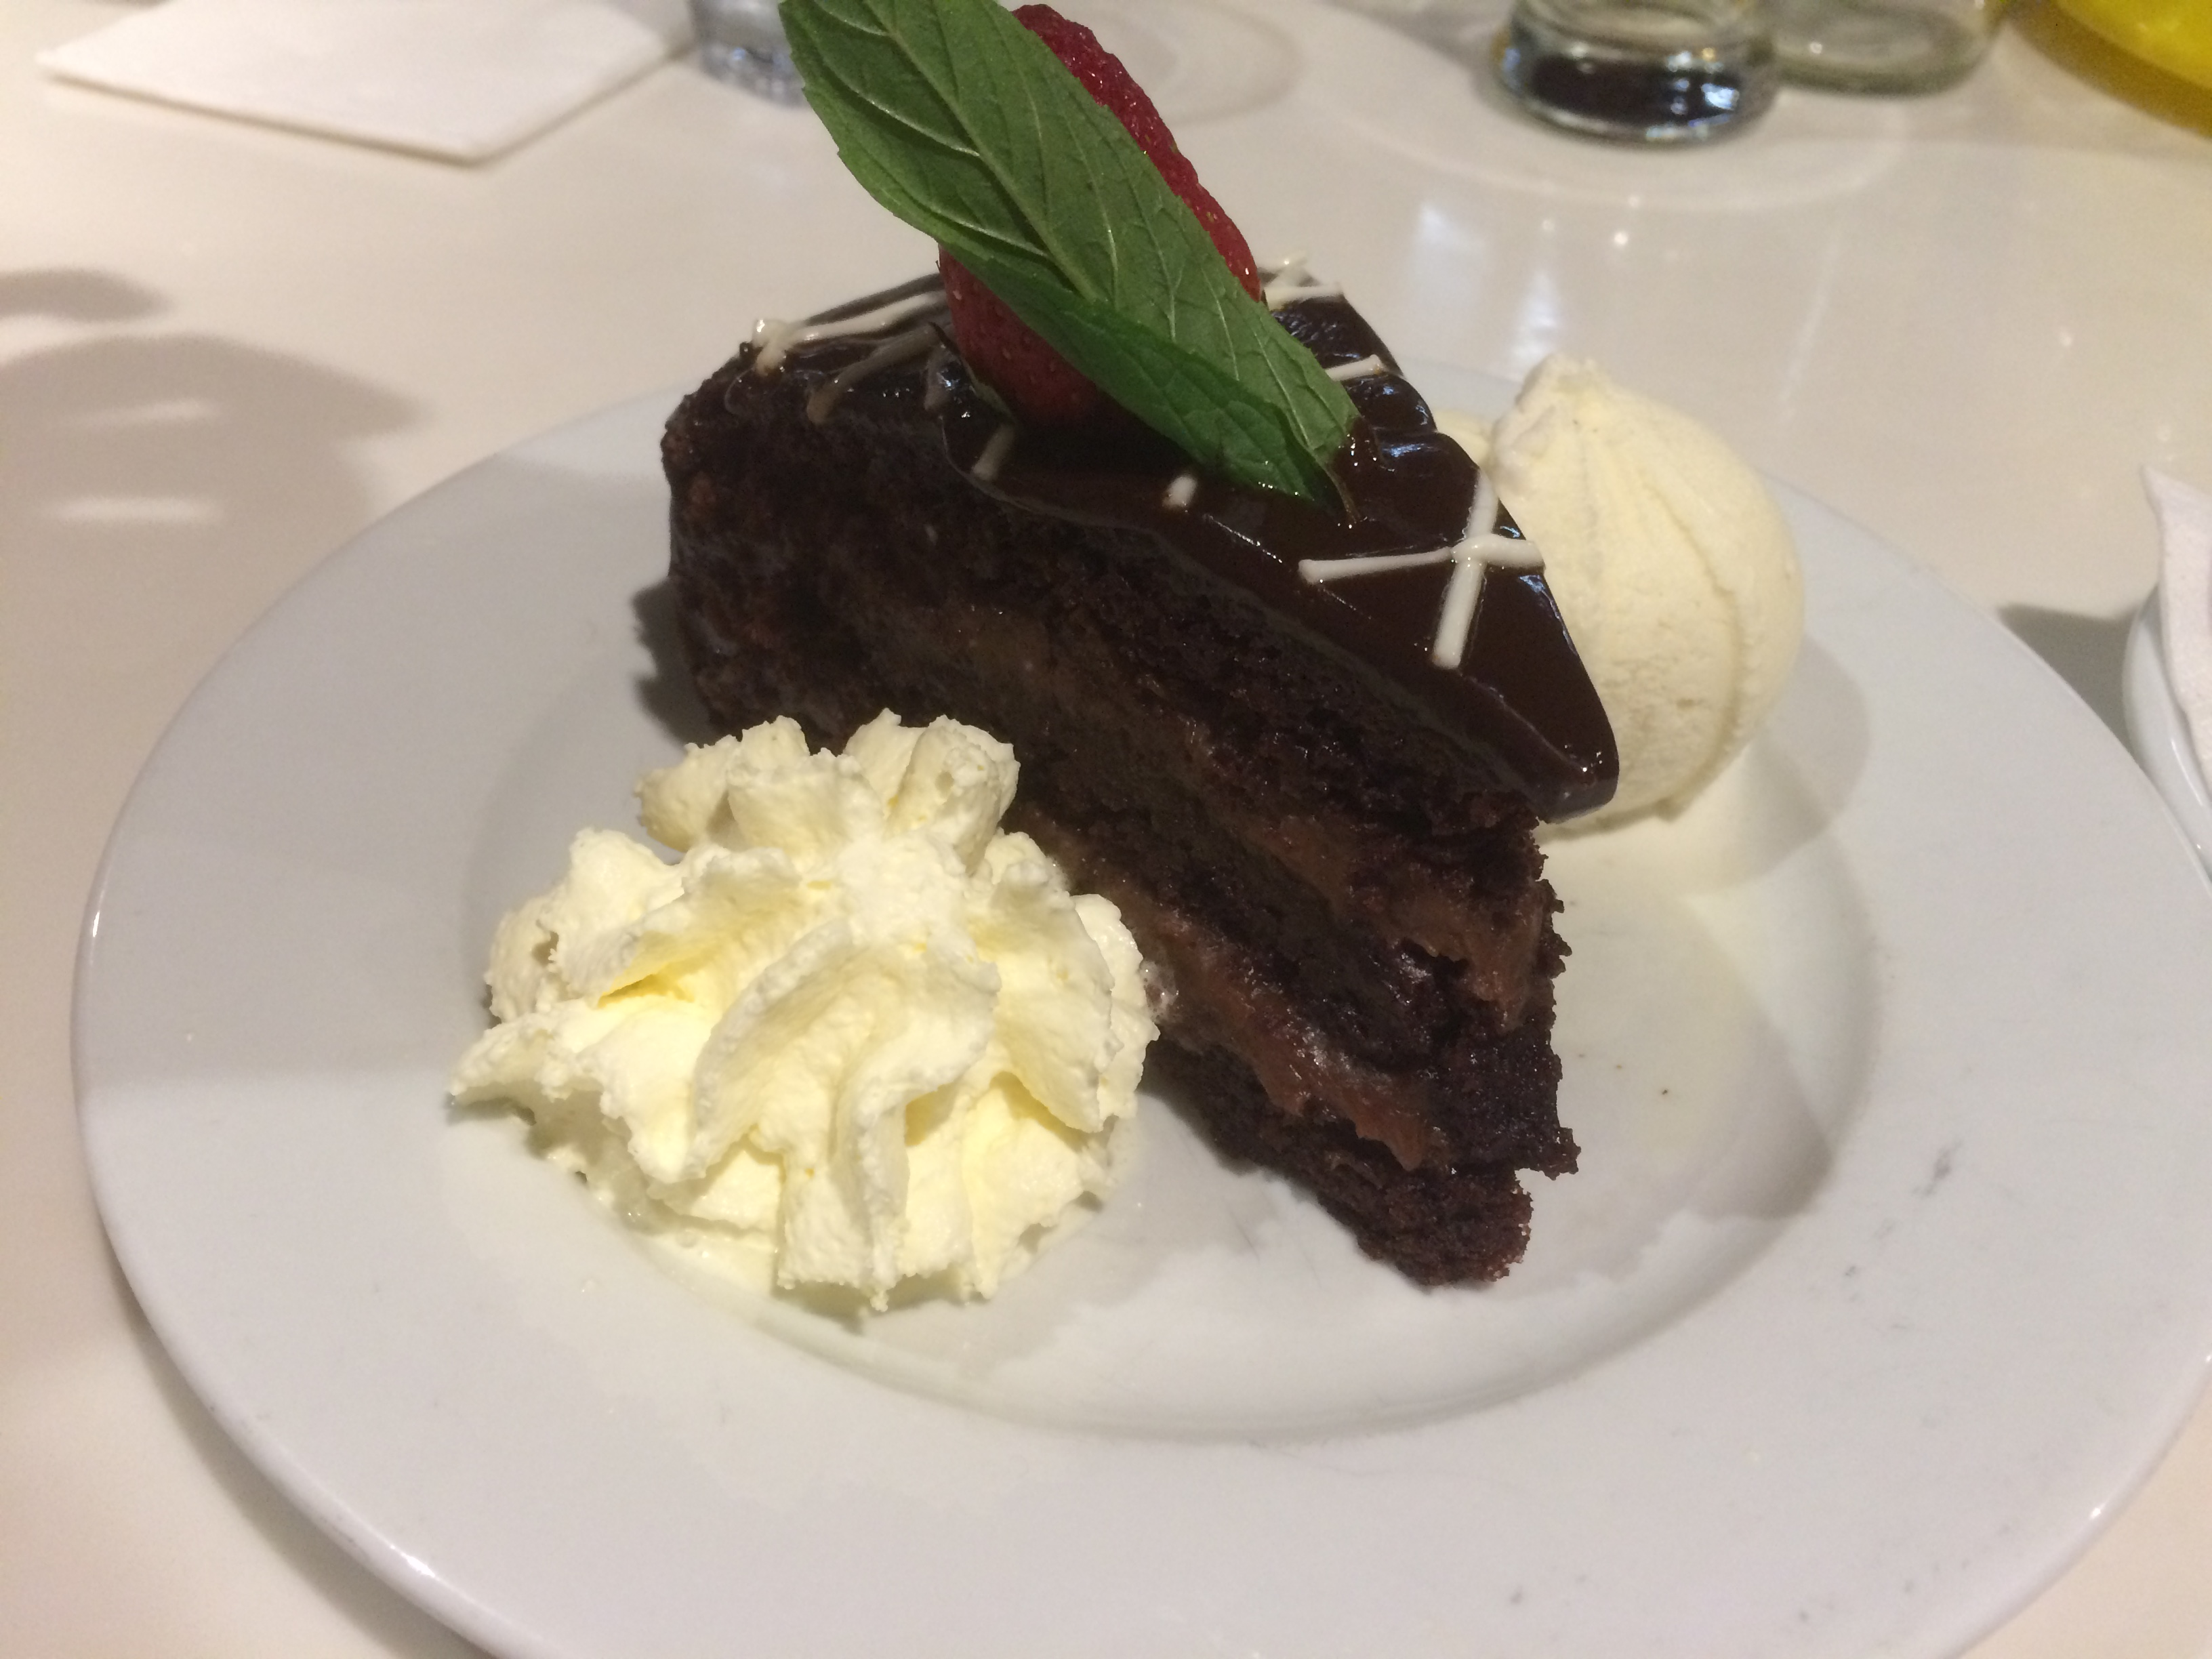 Rossini chocolate cake